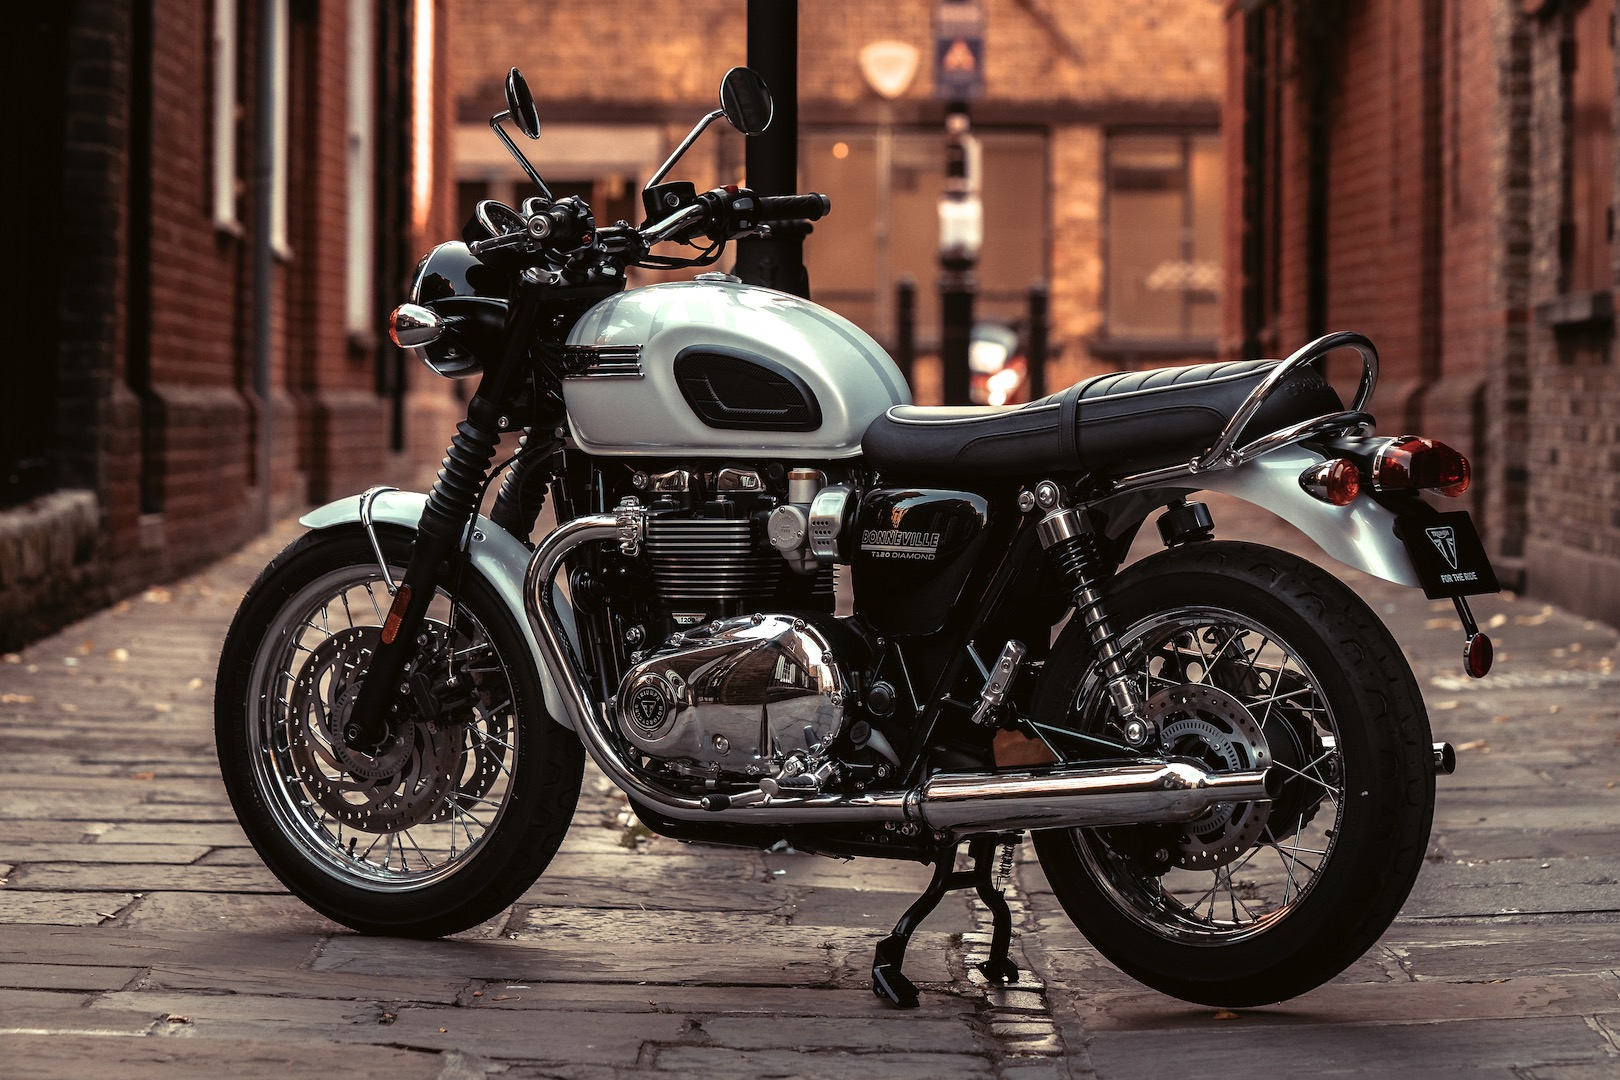 2019 Triumph Bonneville T120 Diamond Edition 6 Fast Facts